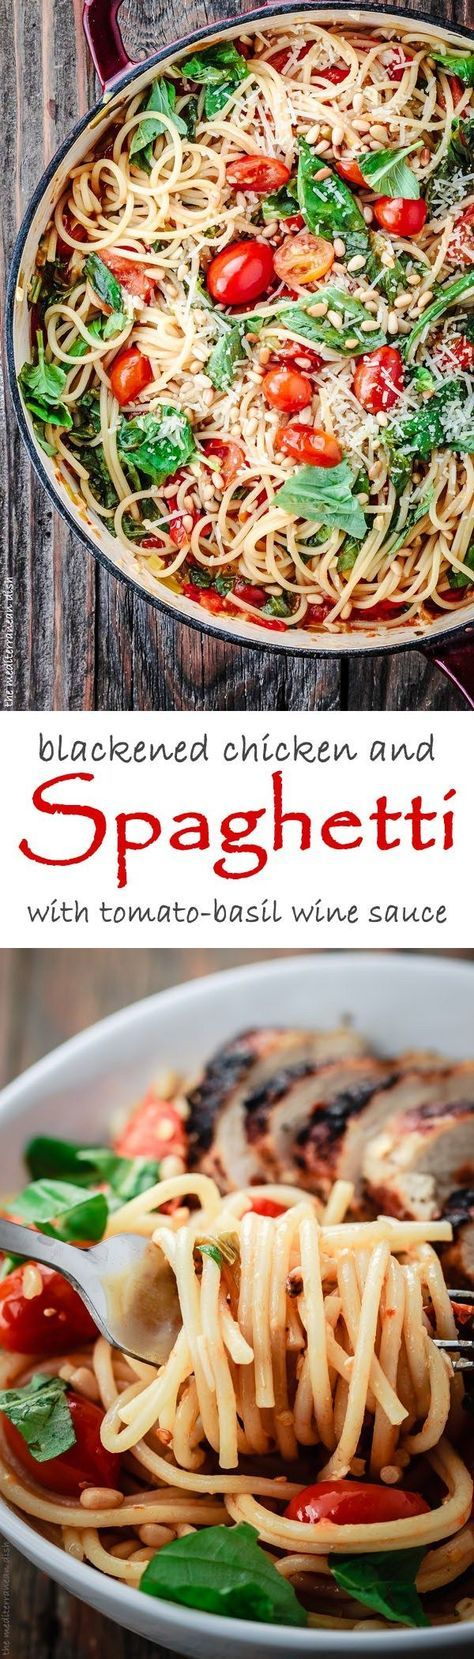 Blackened Chicken and Spaghetti: There are not so many fancy words to describe this tomato-basil spaghetti with blackened chicken. But as casual and unpretentious a bowl of spaghetti can be, it is simply hard to resist and so comforting.